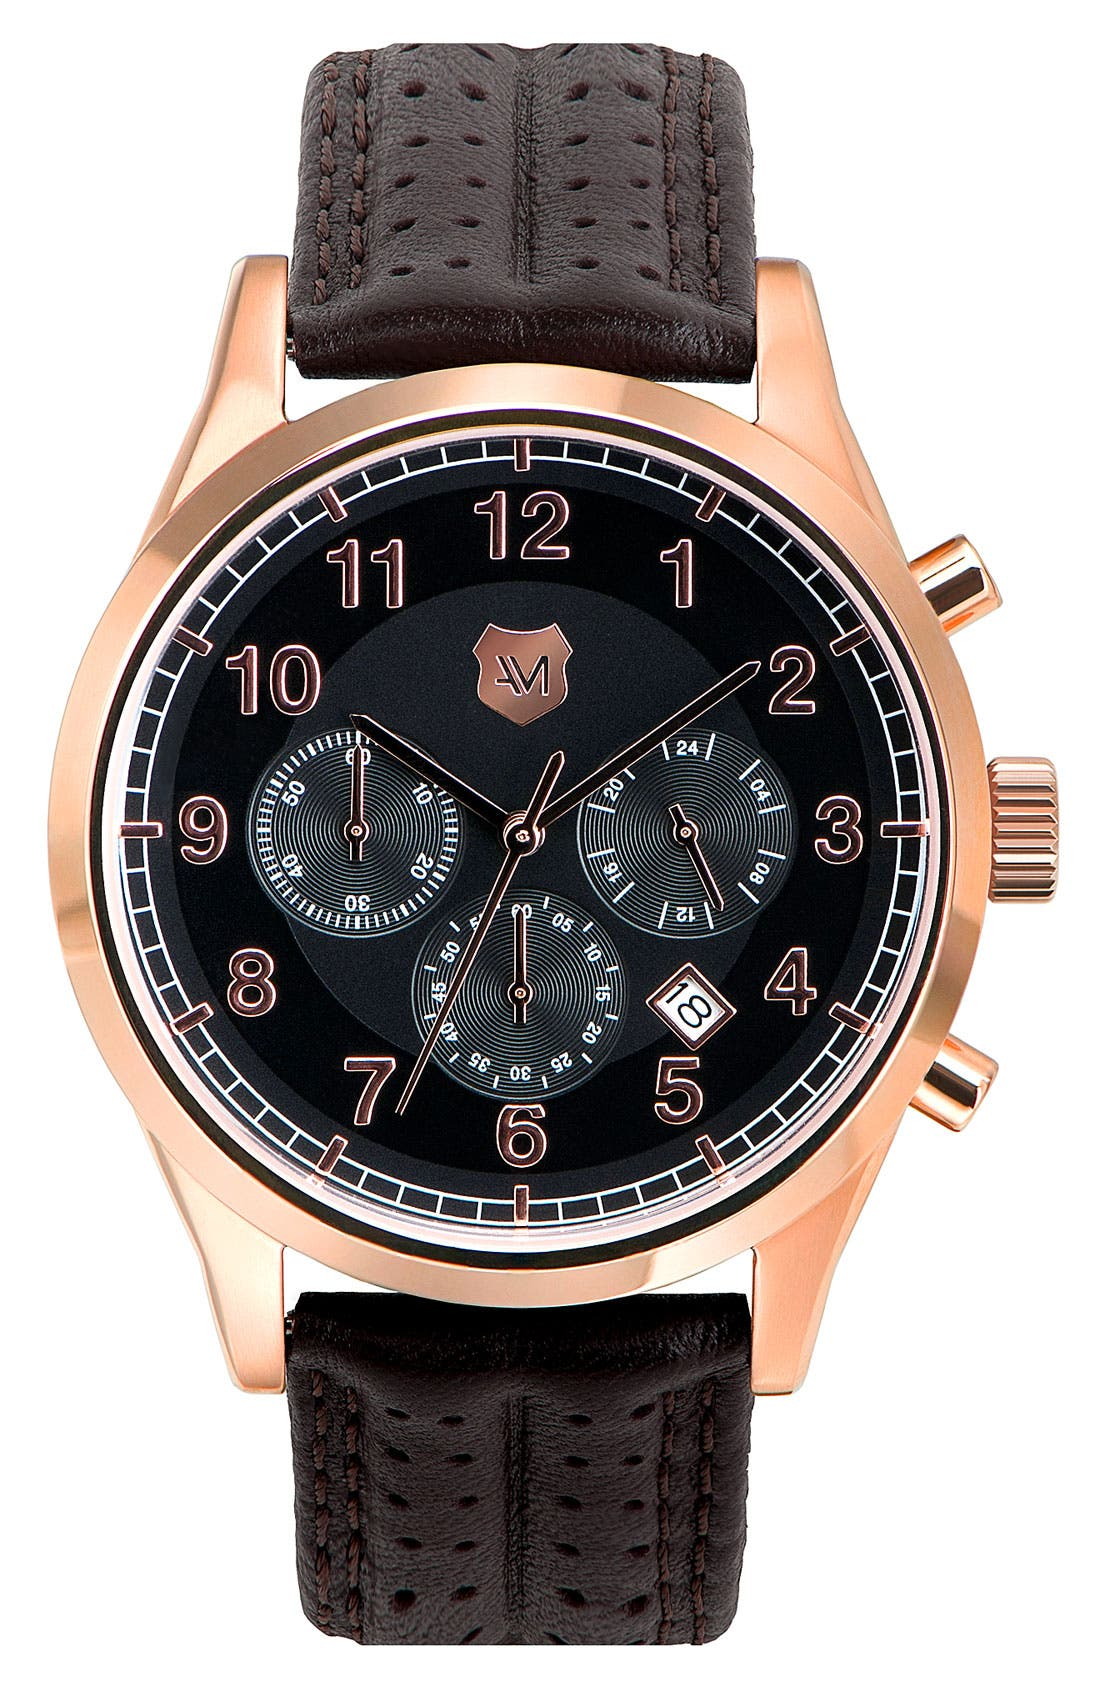 Alternate Image 1 Selected - Andrew Marc Watches 'Club Blazer' Chronograph Leather Strap Watch